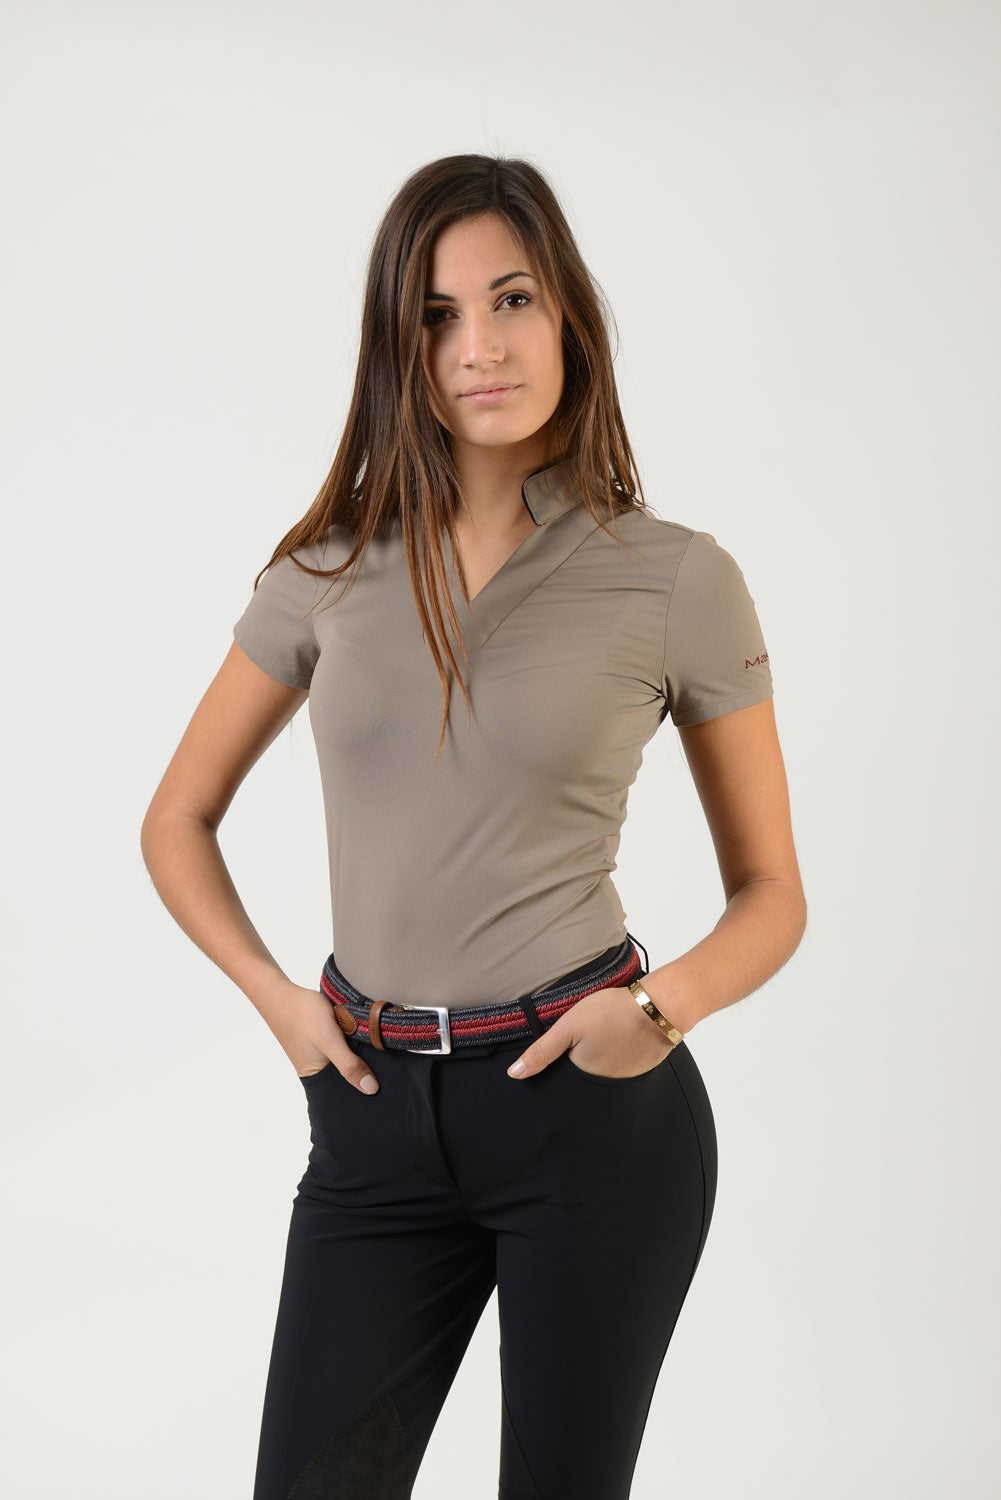 Ladies short sleeve polo shirt | lady short sleeve polo shirt | cotton | short sleeves polo shirt | short sleeves shirt | model ATENA | short sleeves riding polo | lady polo | lady riding shirt | riding shirt | ladies riding shirt | comfort of movement | Makebe | clothing | equestrian | riding | technical material | made in Italy | elegance | beige |